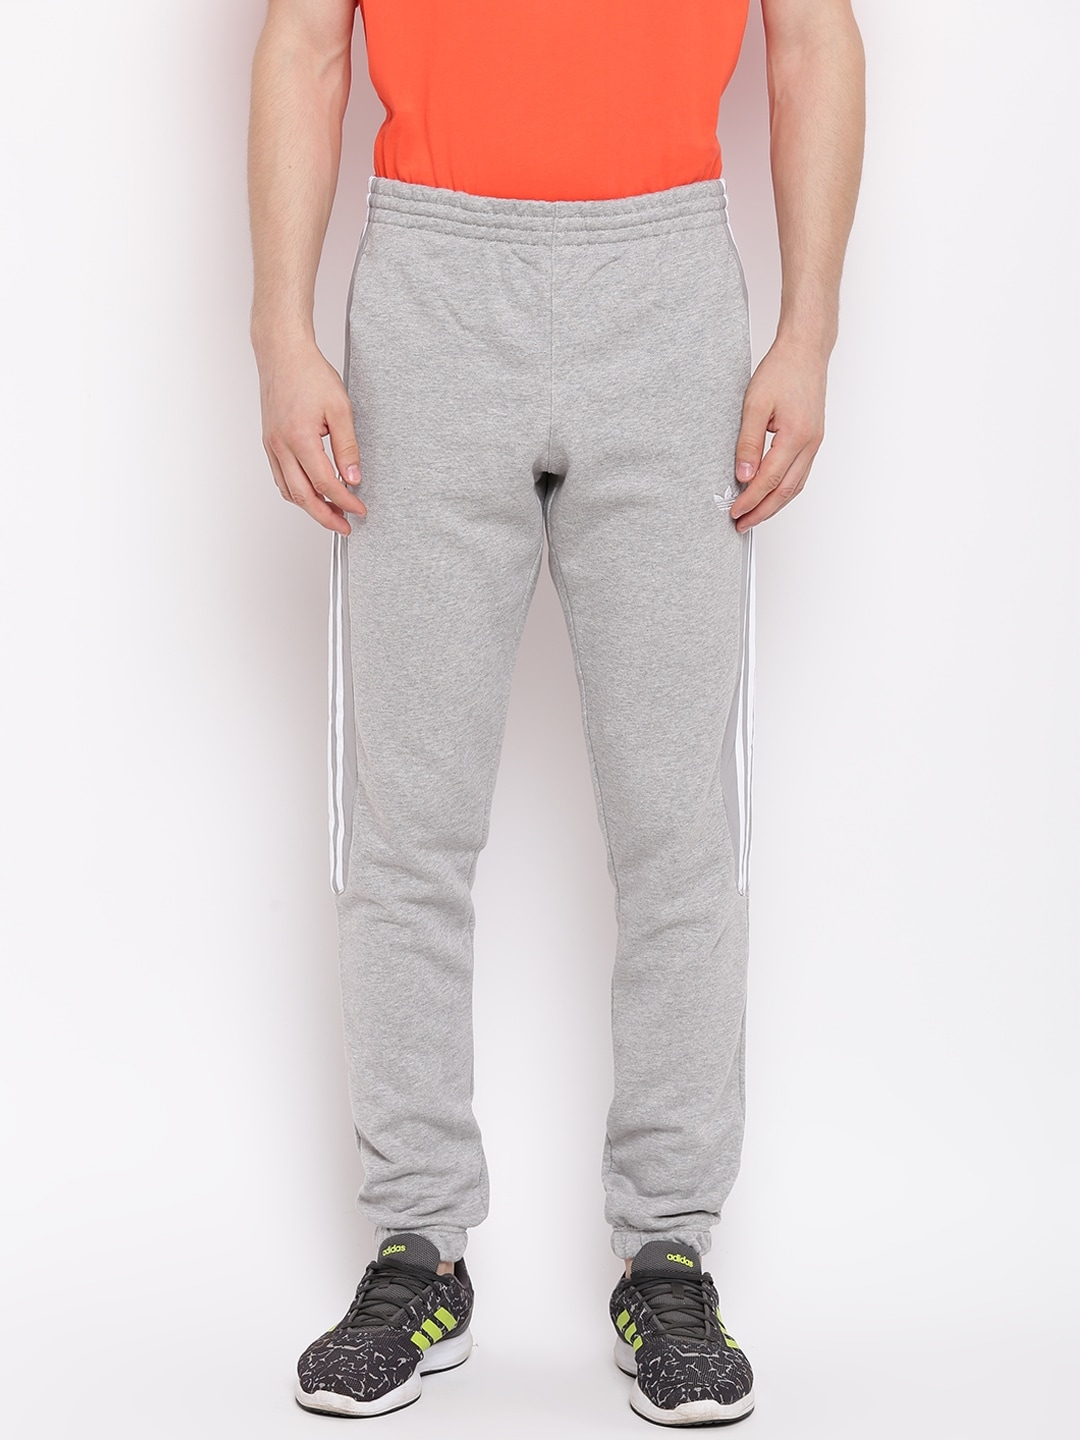 ADIDAS Originals Men Grey RADKIN Joggers